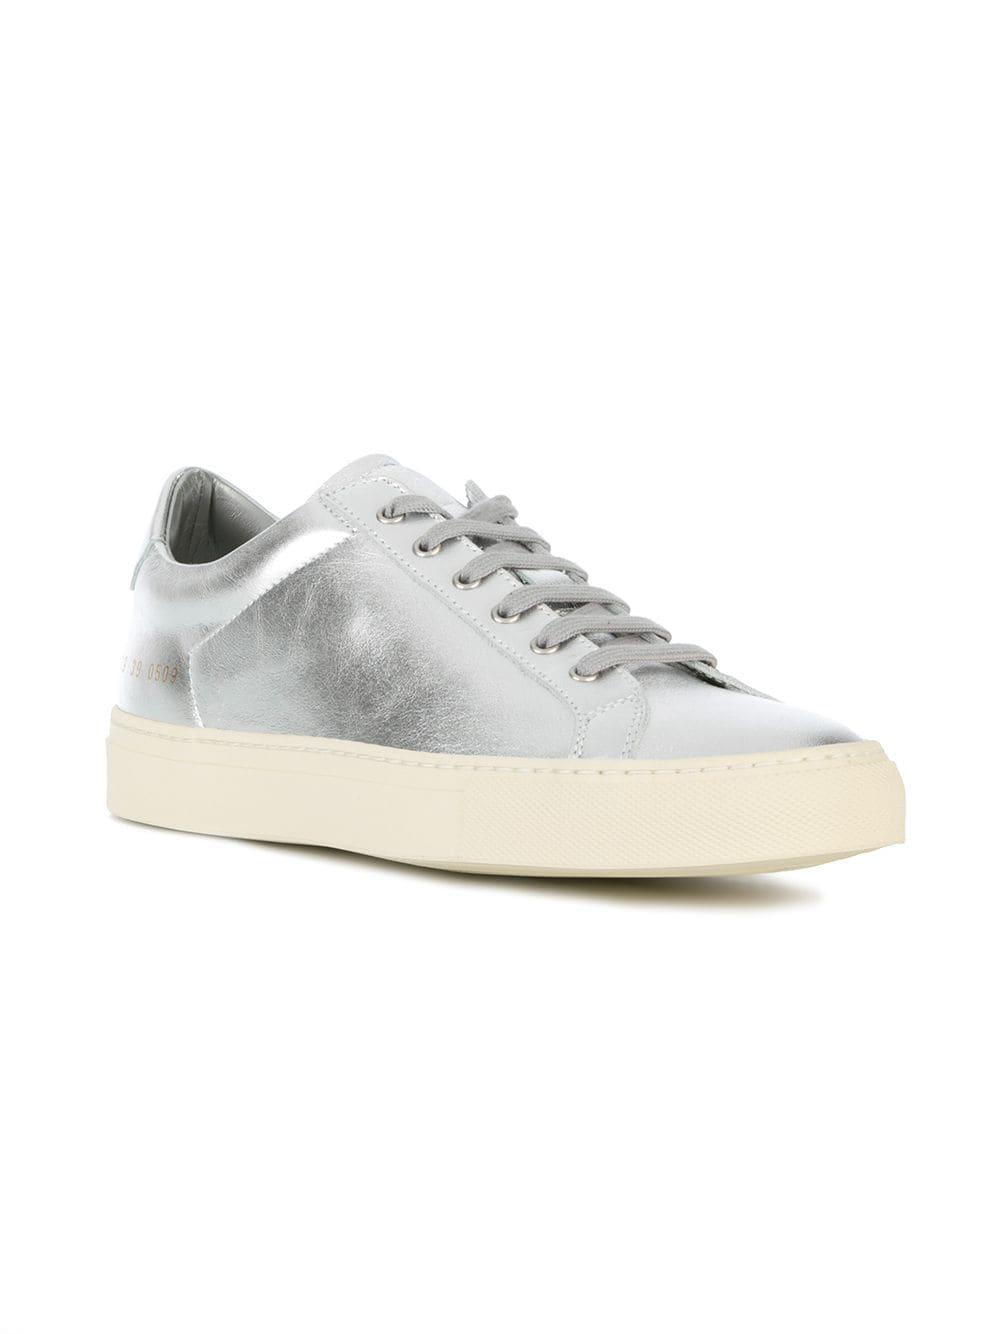 Common Projects Leather Achilles Low Top Sneakers in Metallic